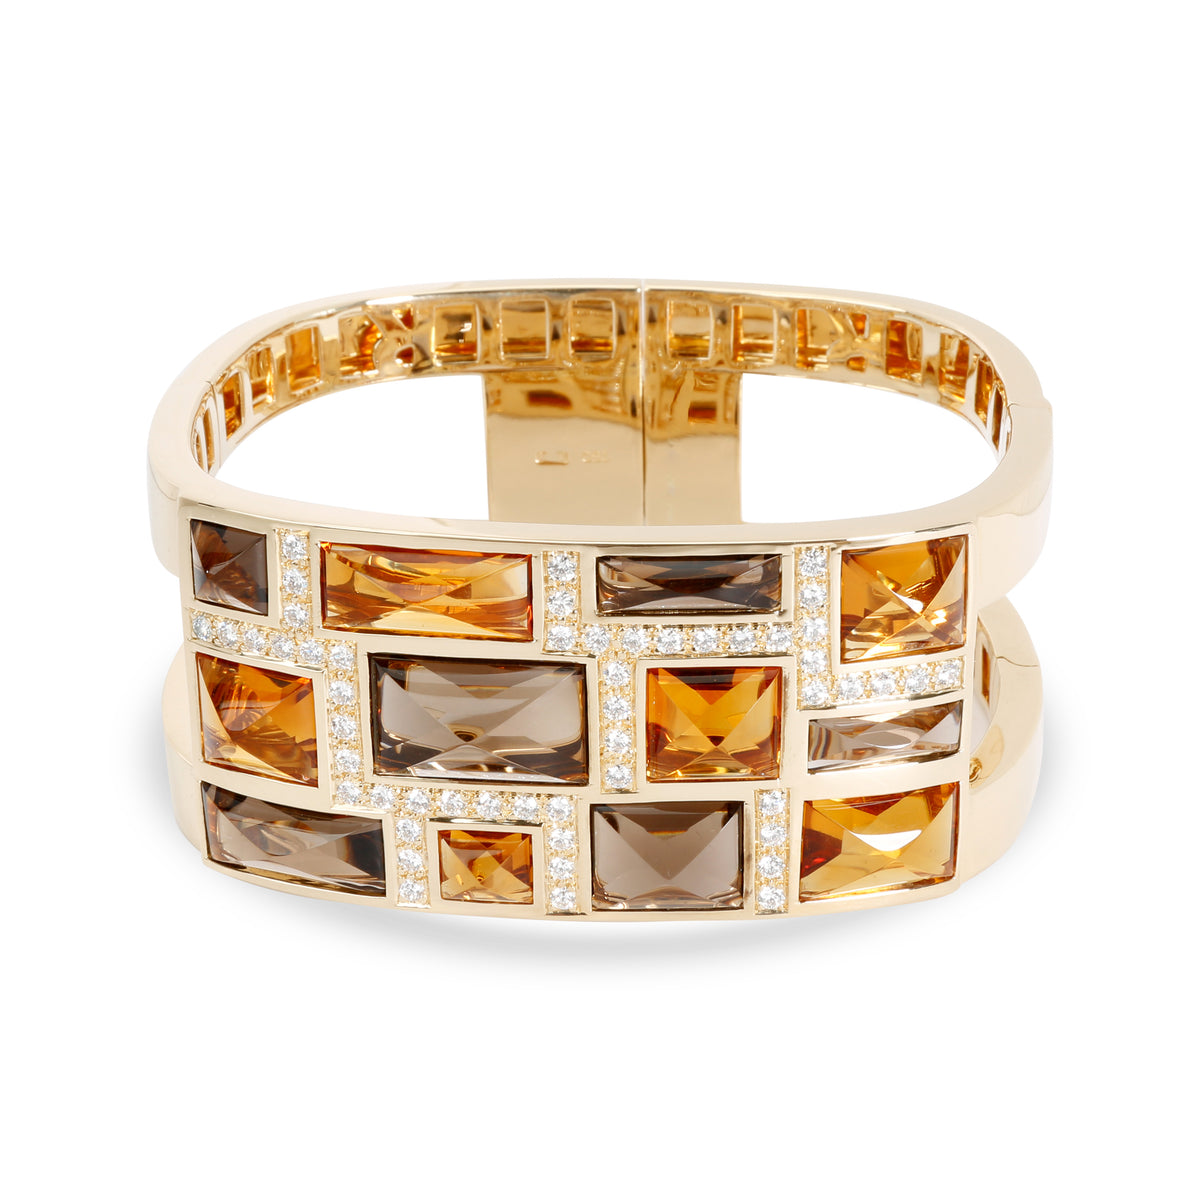 Rodney Rayner Citrine, Smoky Topaz & Diamond Bangle in 18K Yellow Gold 1.23 ctw